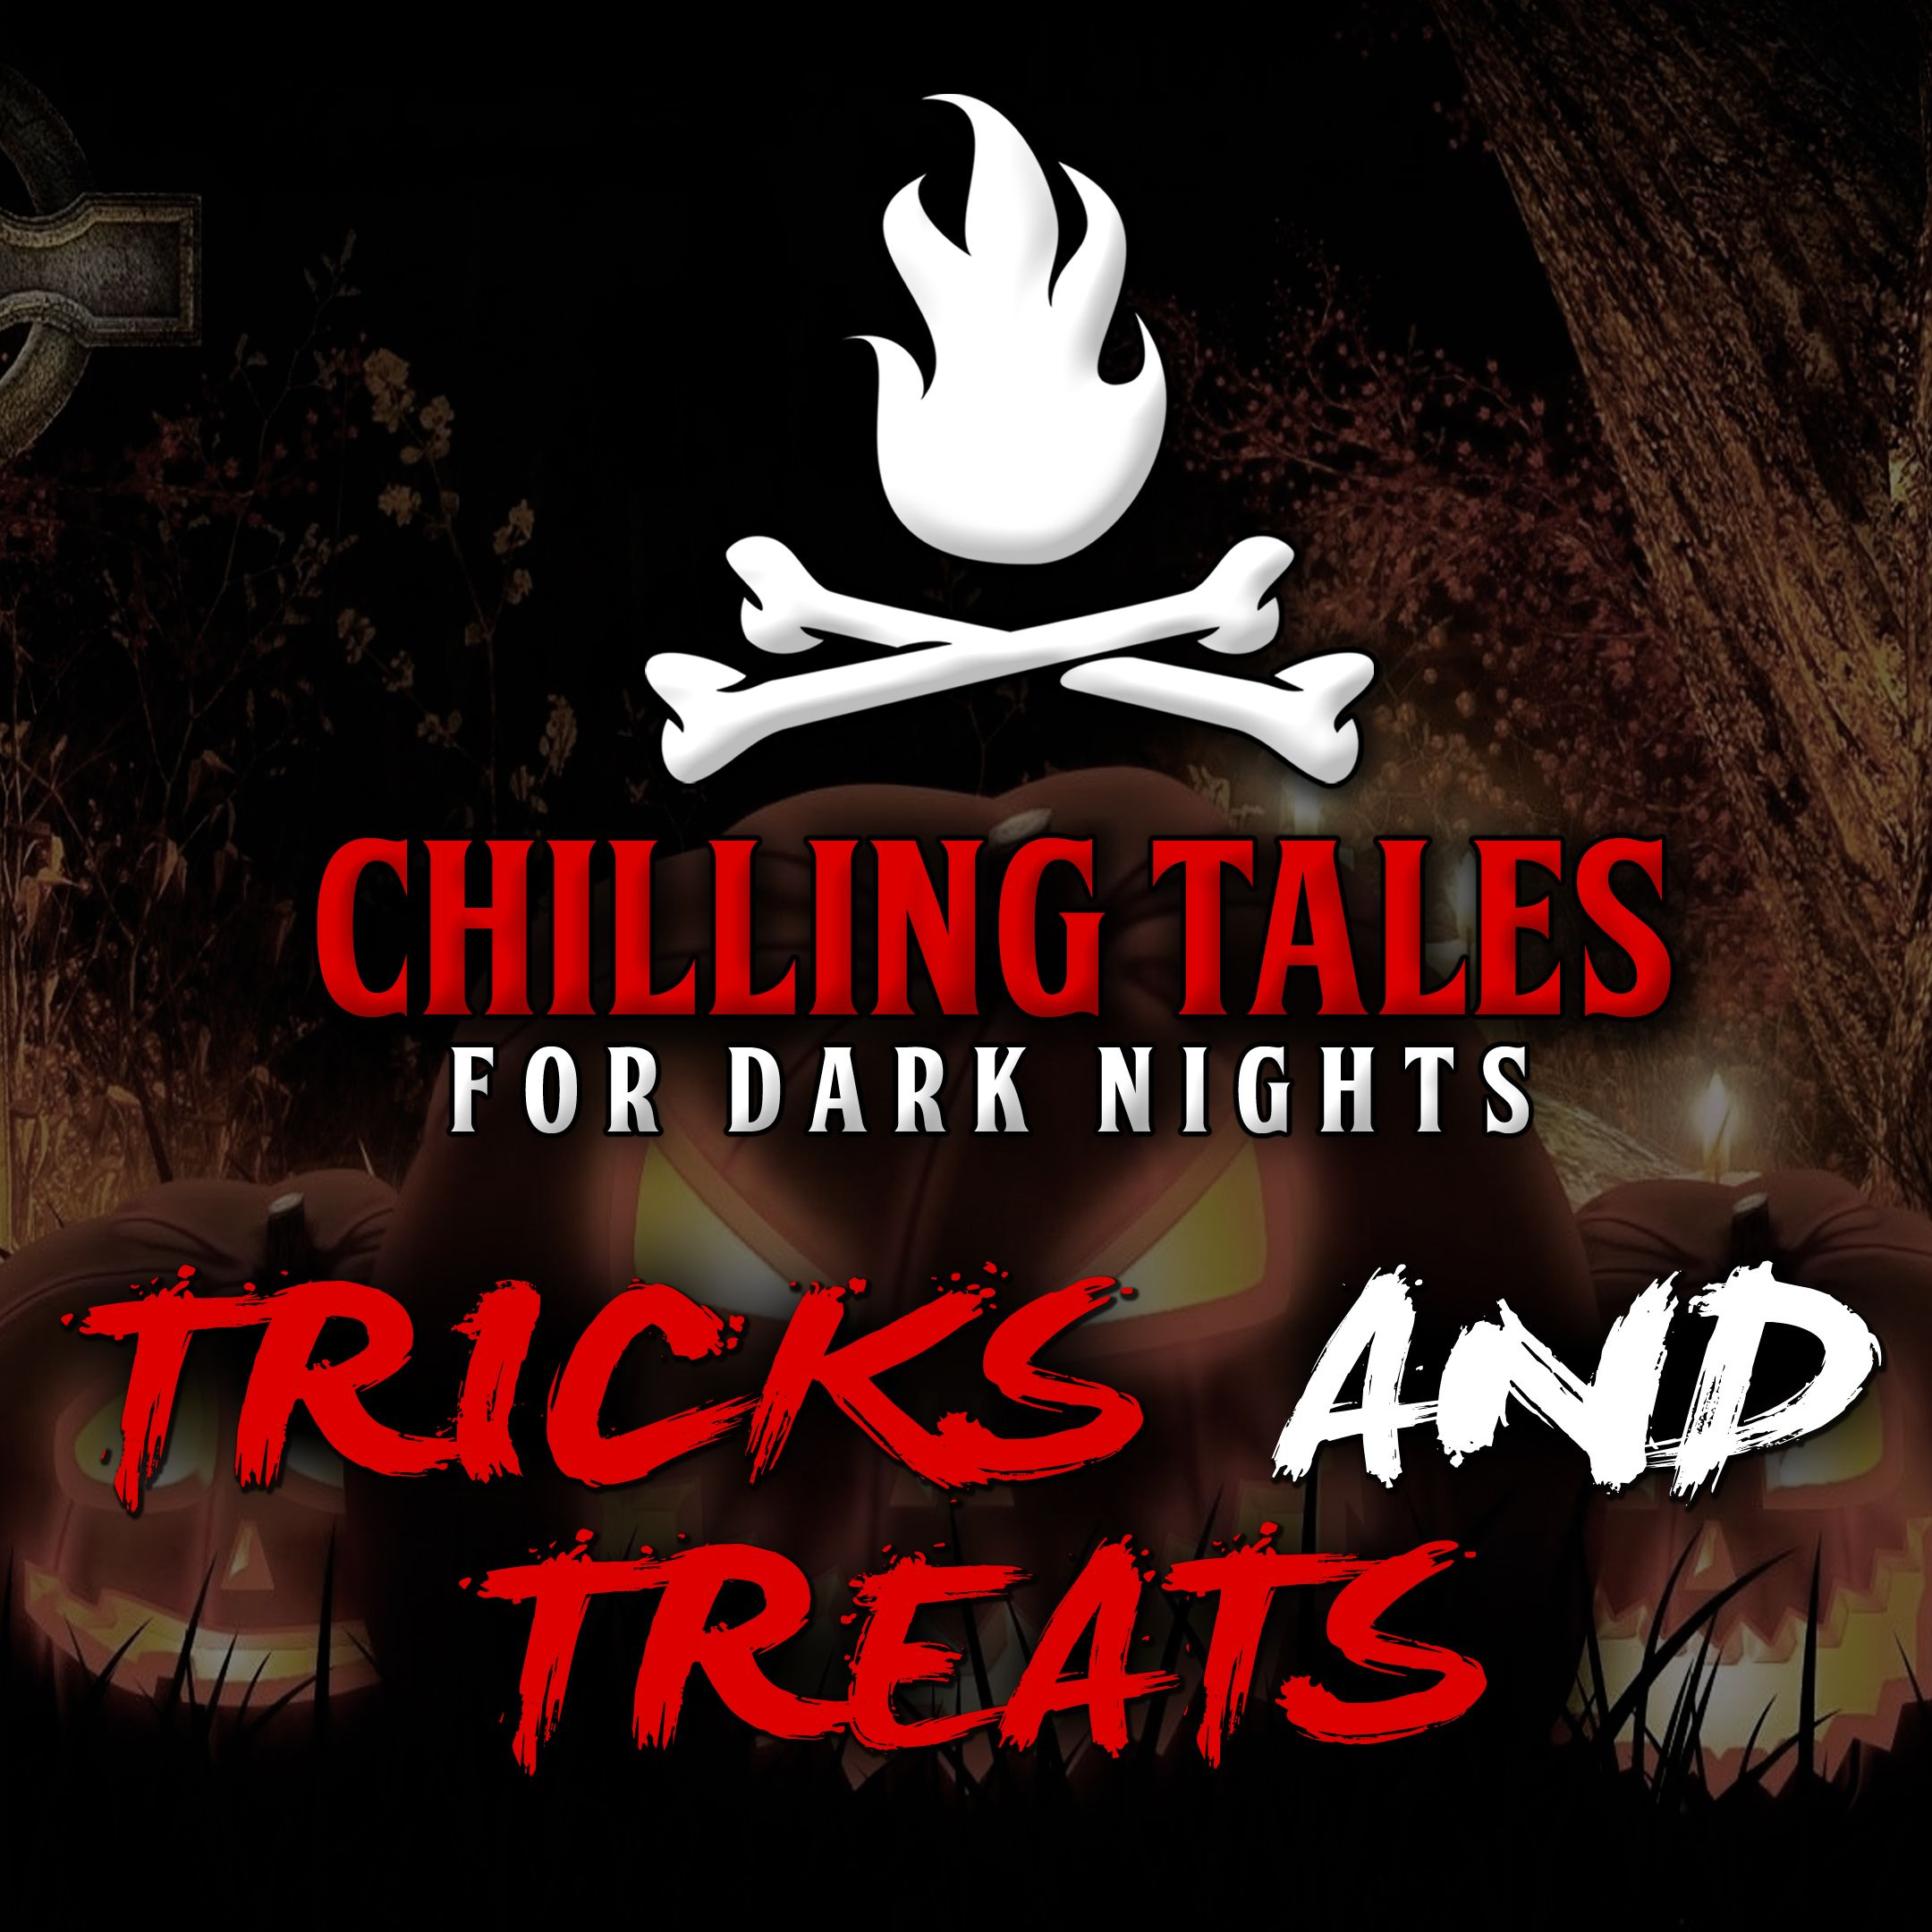 61: Tricks and Treats – Chilling Tales for Dark Nights